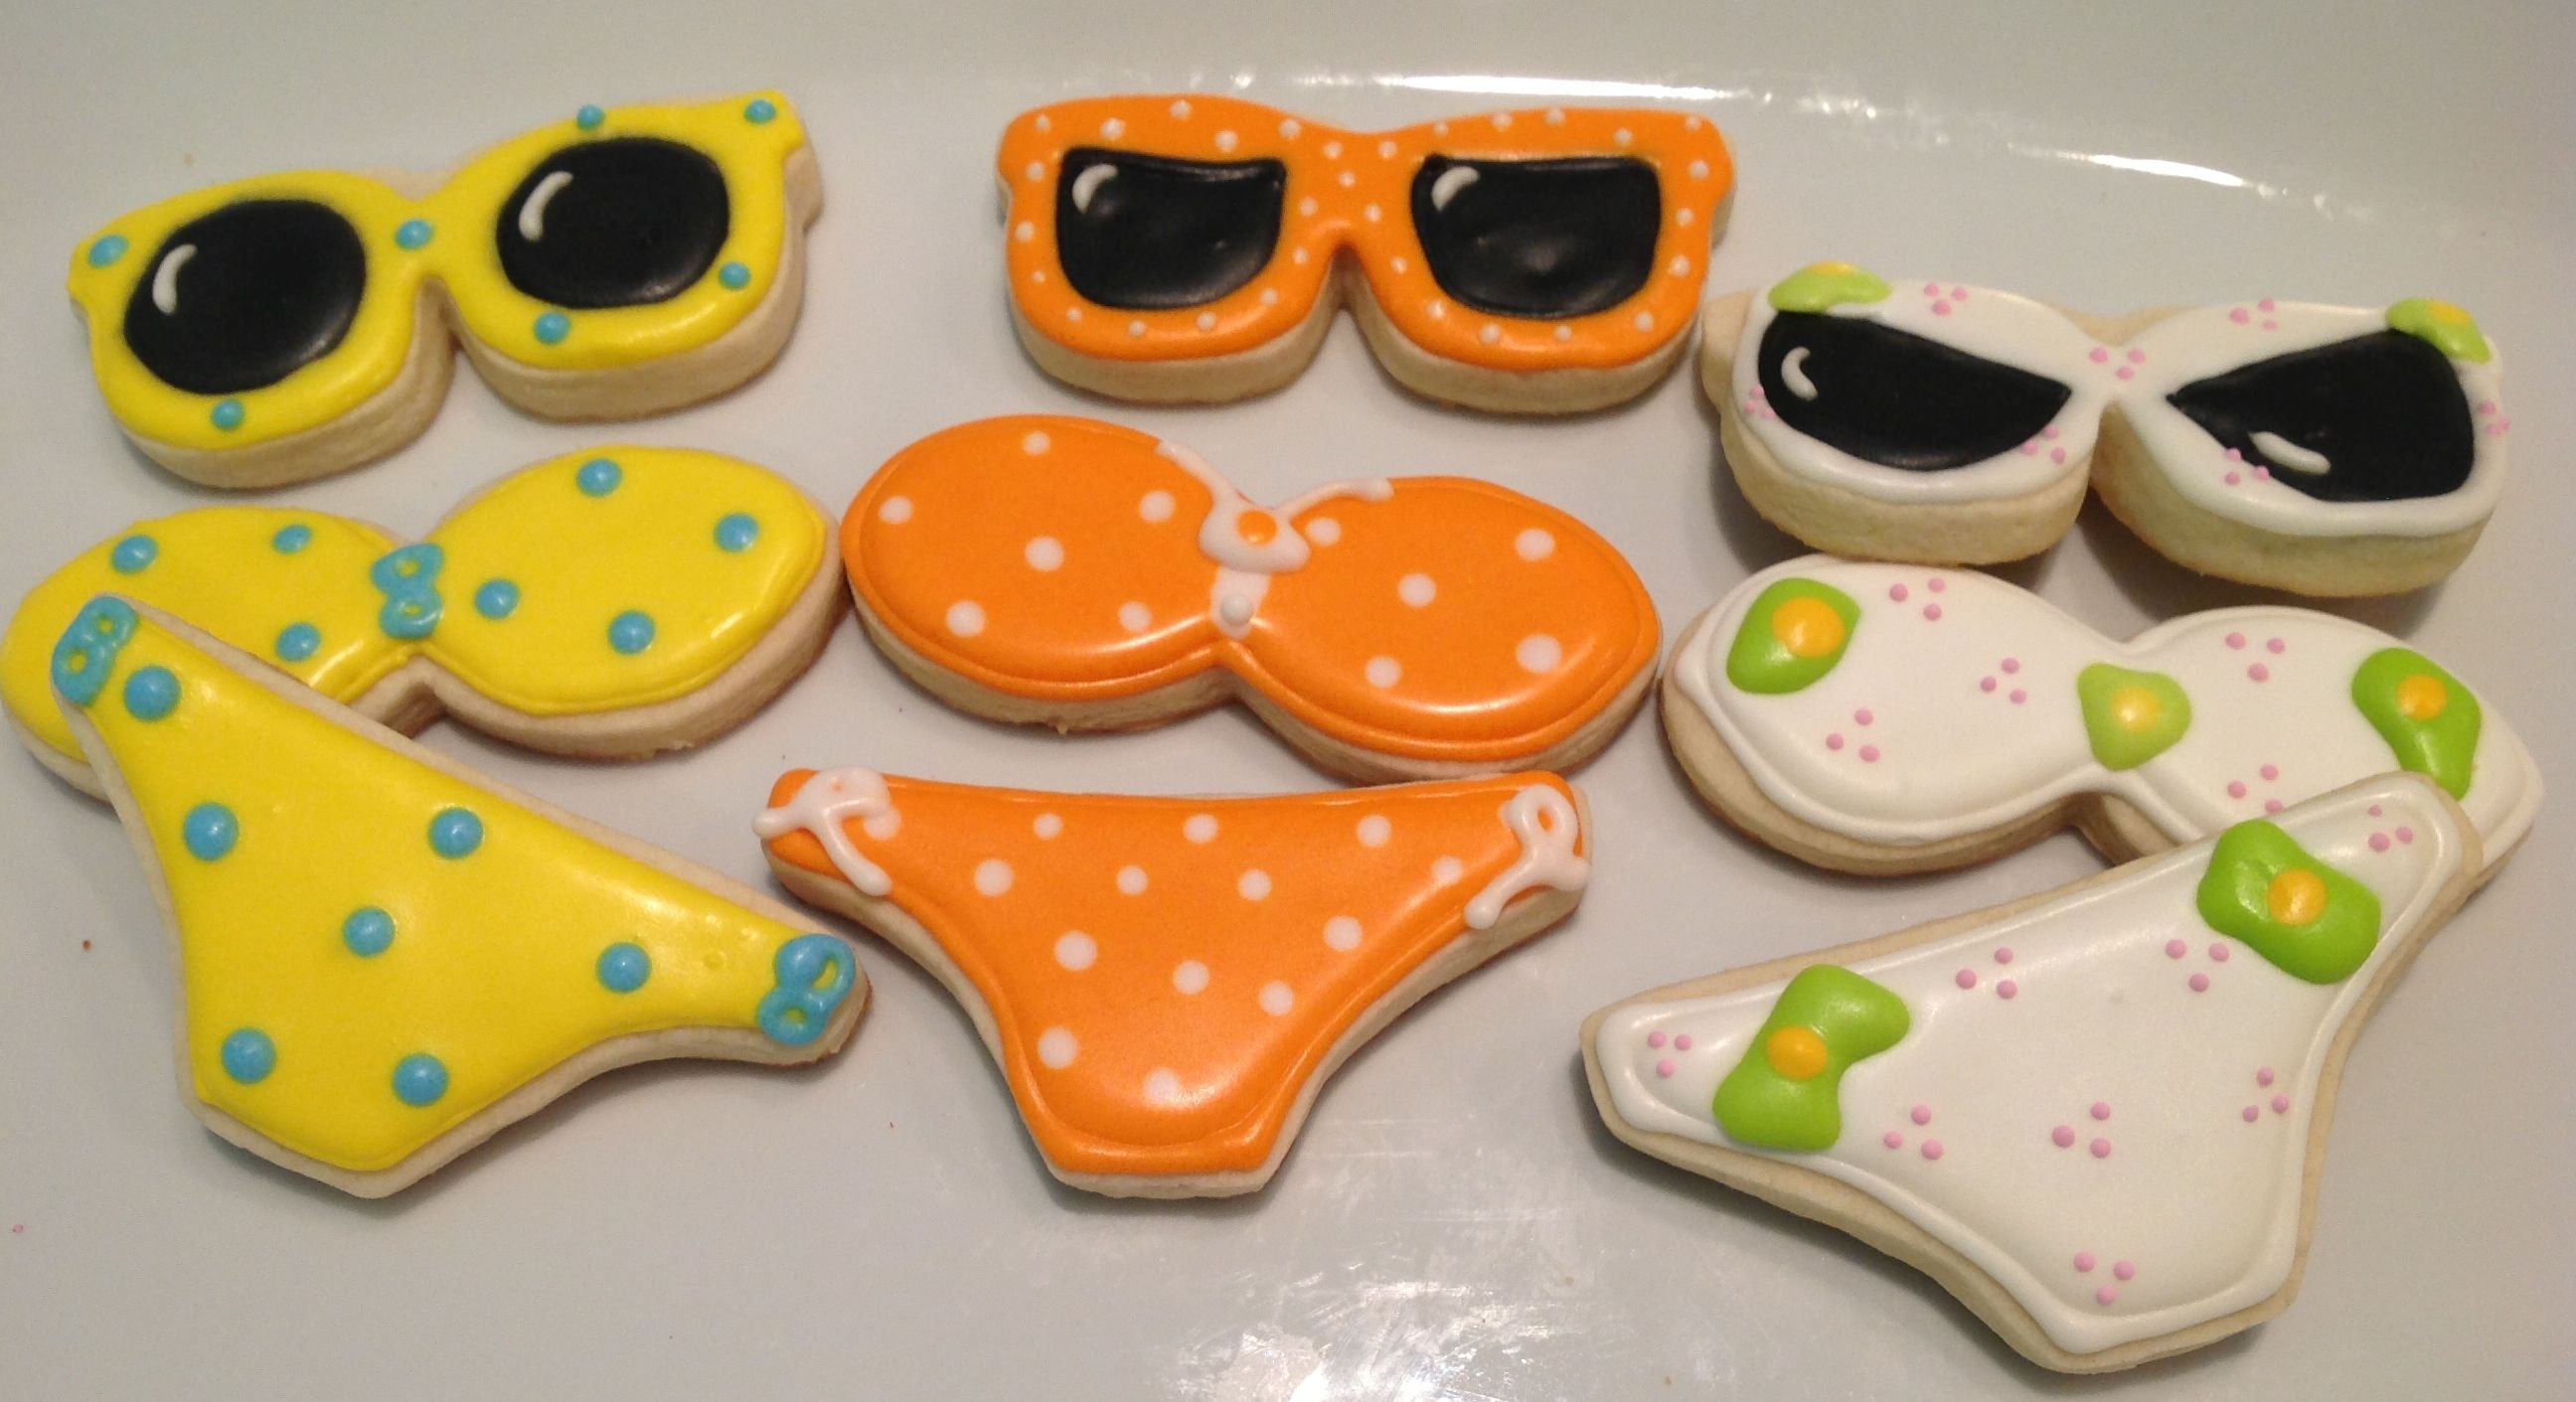 Bikini, Bathing Suits And Sunglasses  Decorated Sugar Cookies By